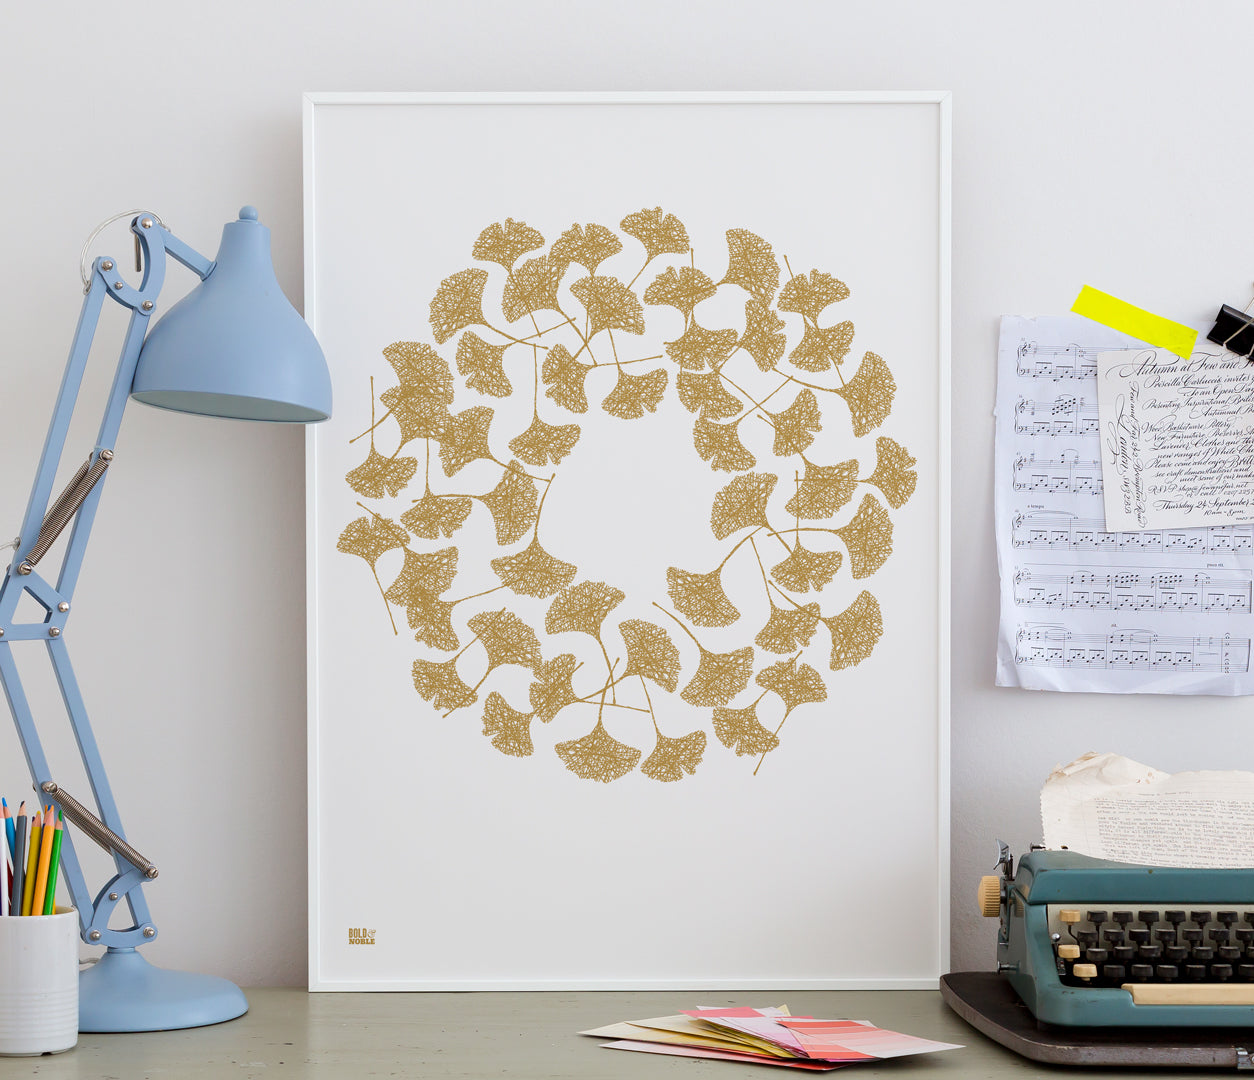 Pictures and Wall Art, Screen Printed Ginkgo Leaves in Bronze